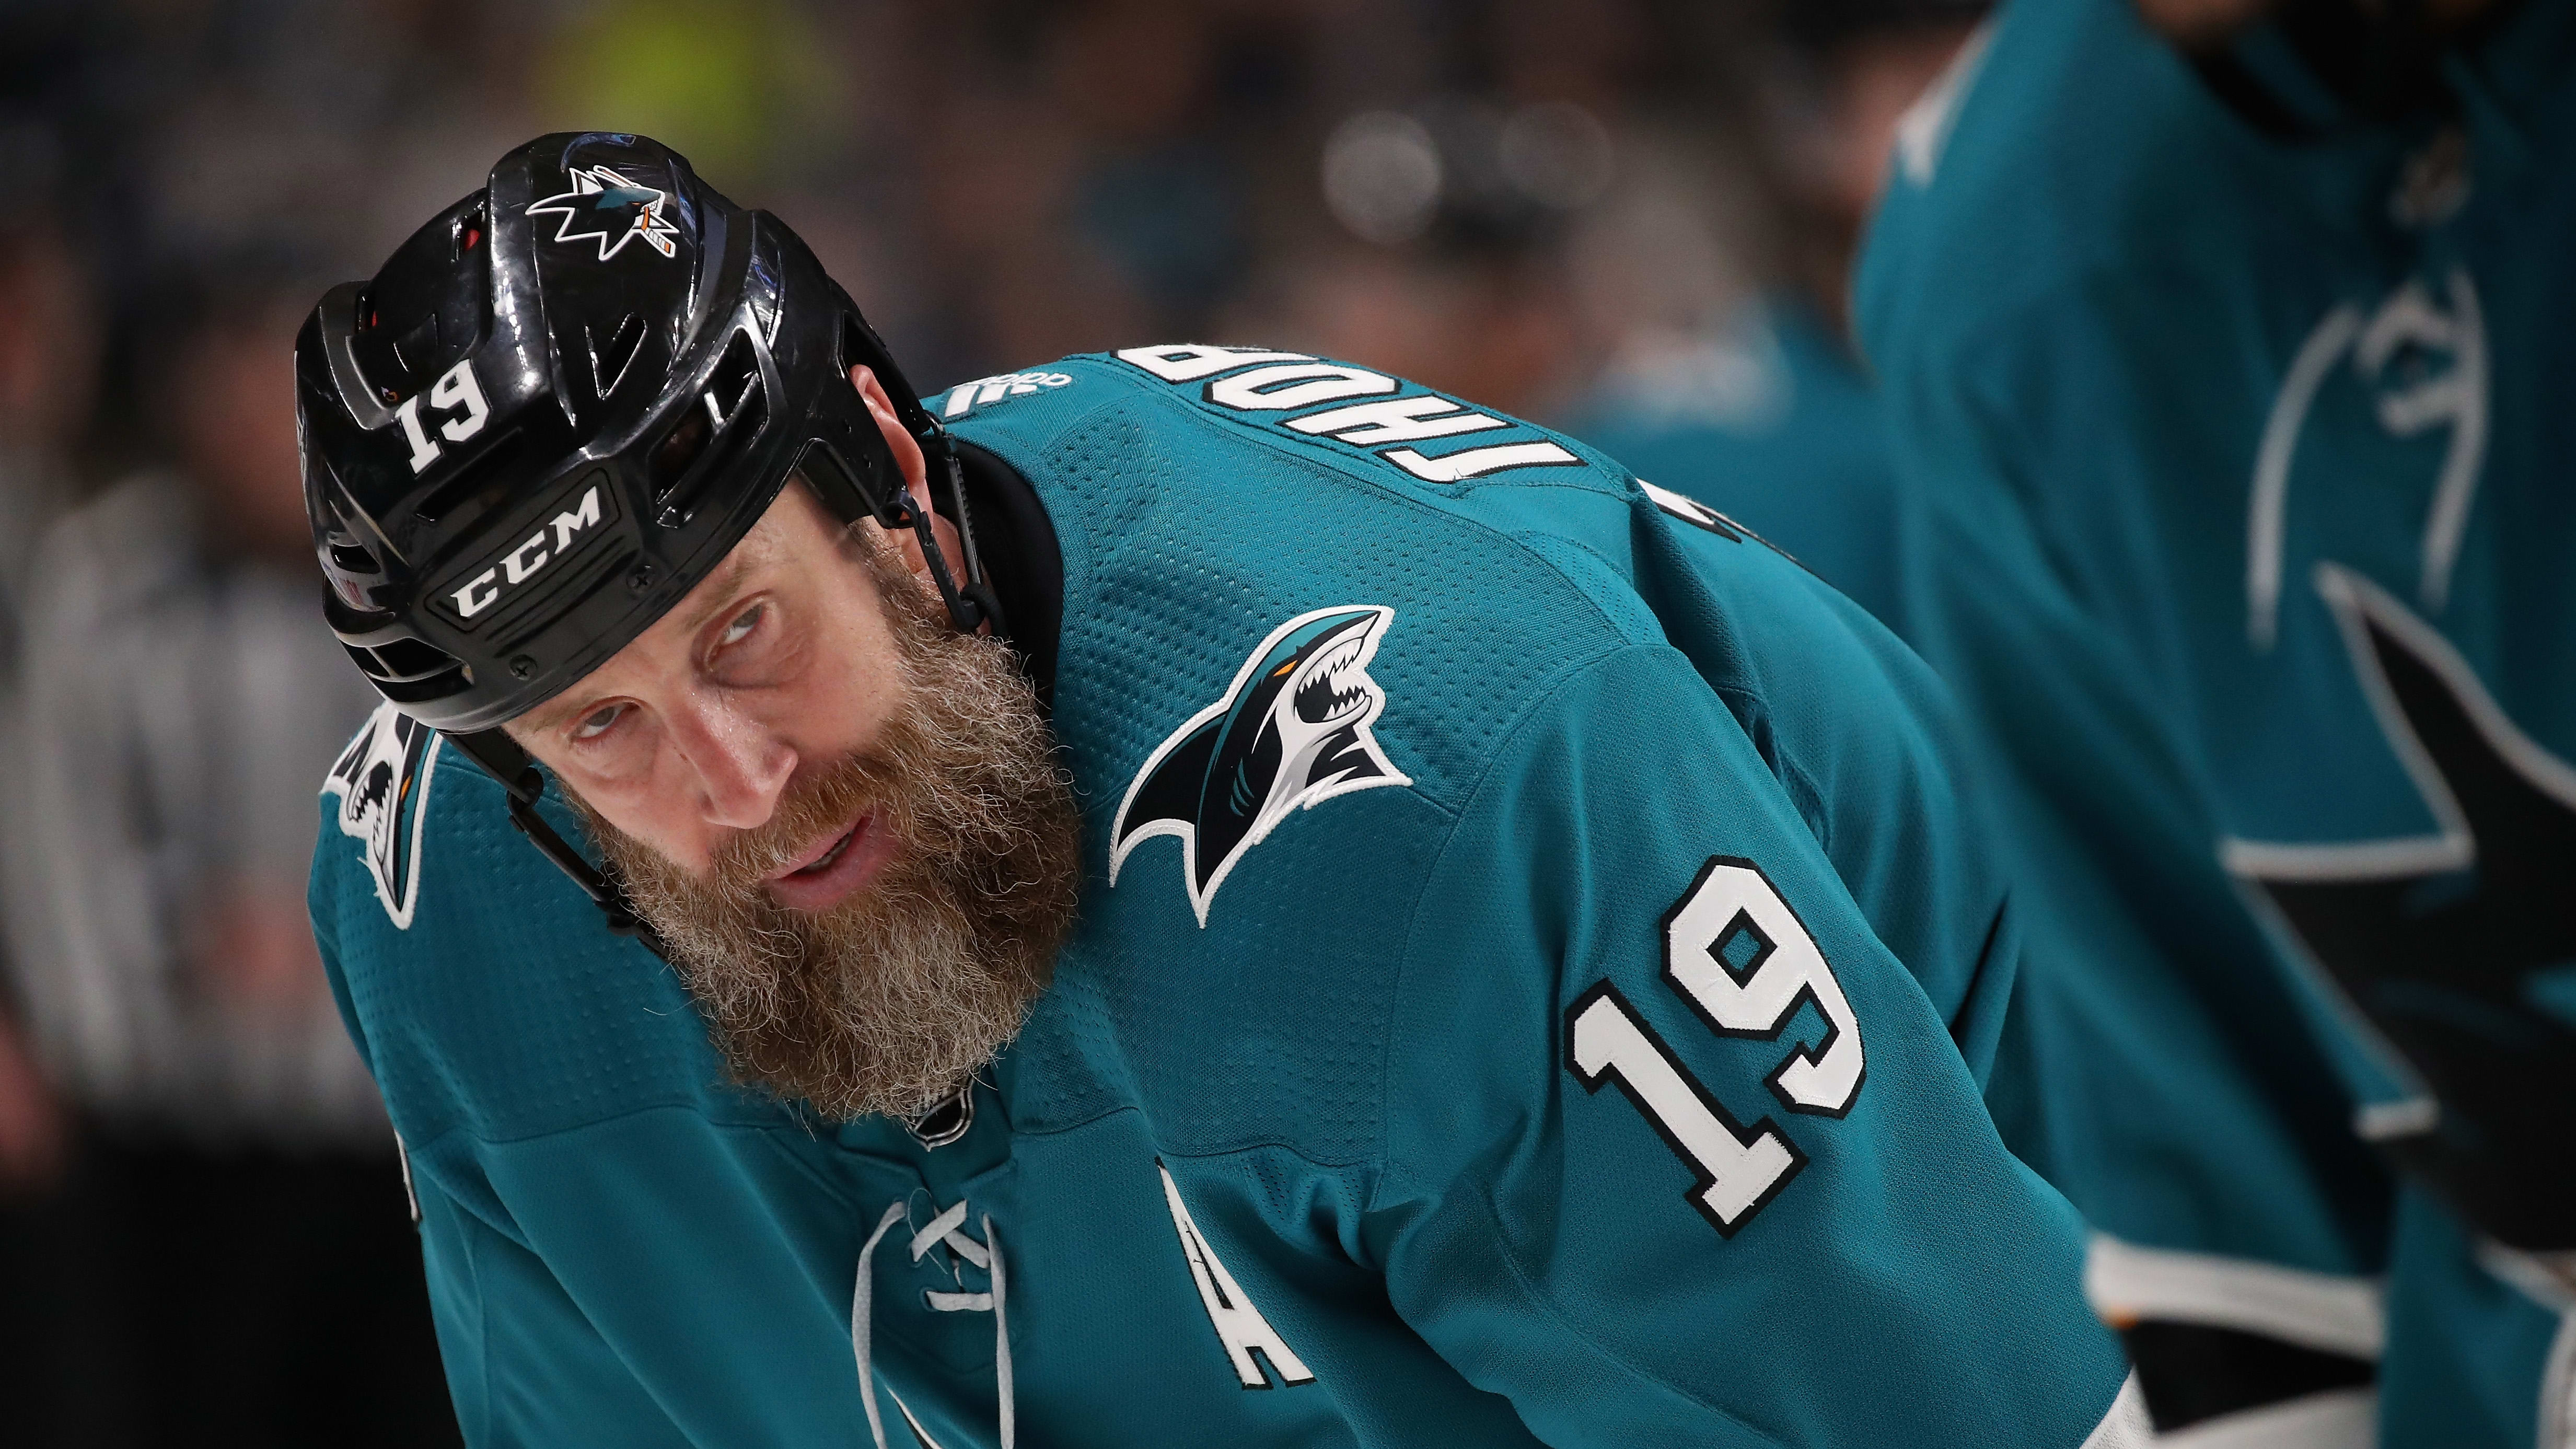 SAN JOSE, CALIFORNIA - MAY 11:  Joe Thornton #19 of the San Jose Sharks against the St. Louis Blues in Game One  NHL Western Conference Final during the 2019 NHL Stanley Cup Playoffs at SAP Center on May 11, 2019 in San Jose, California.  The Sharks defeated the Blues 6-3.  (Photo by Christian Petersen/Getty Images)